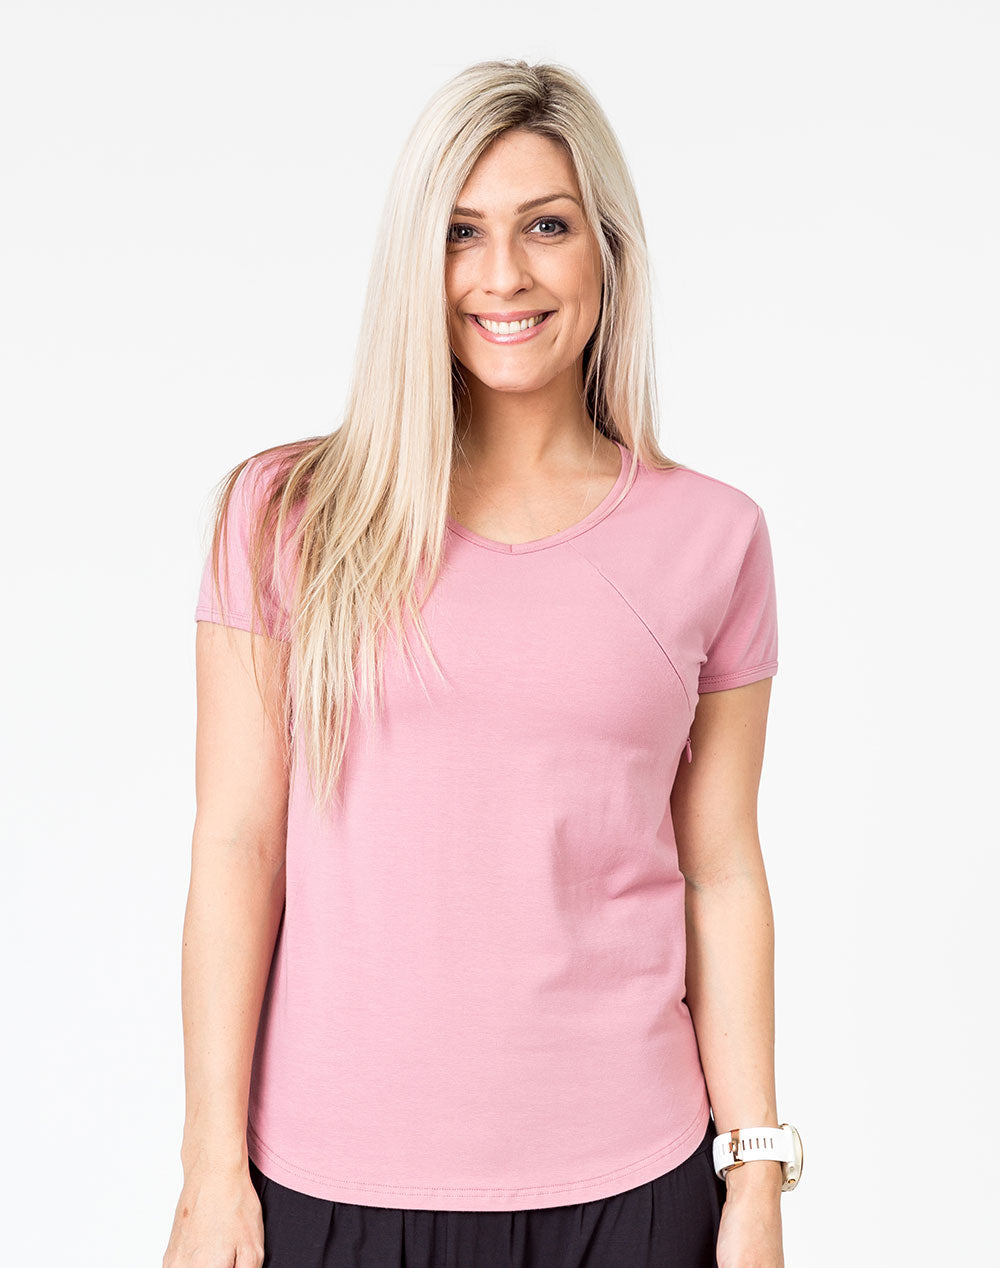 active mum wearing a pink scoop breastfeeding t-shirt